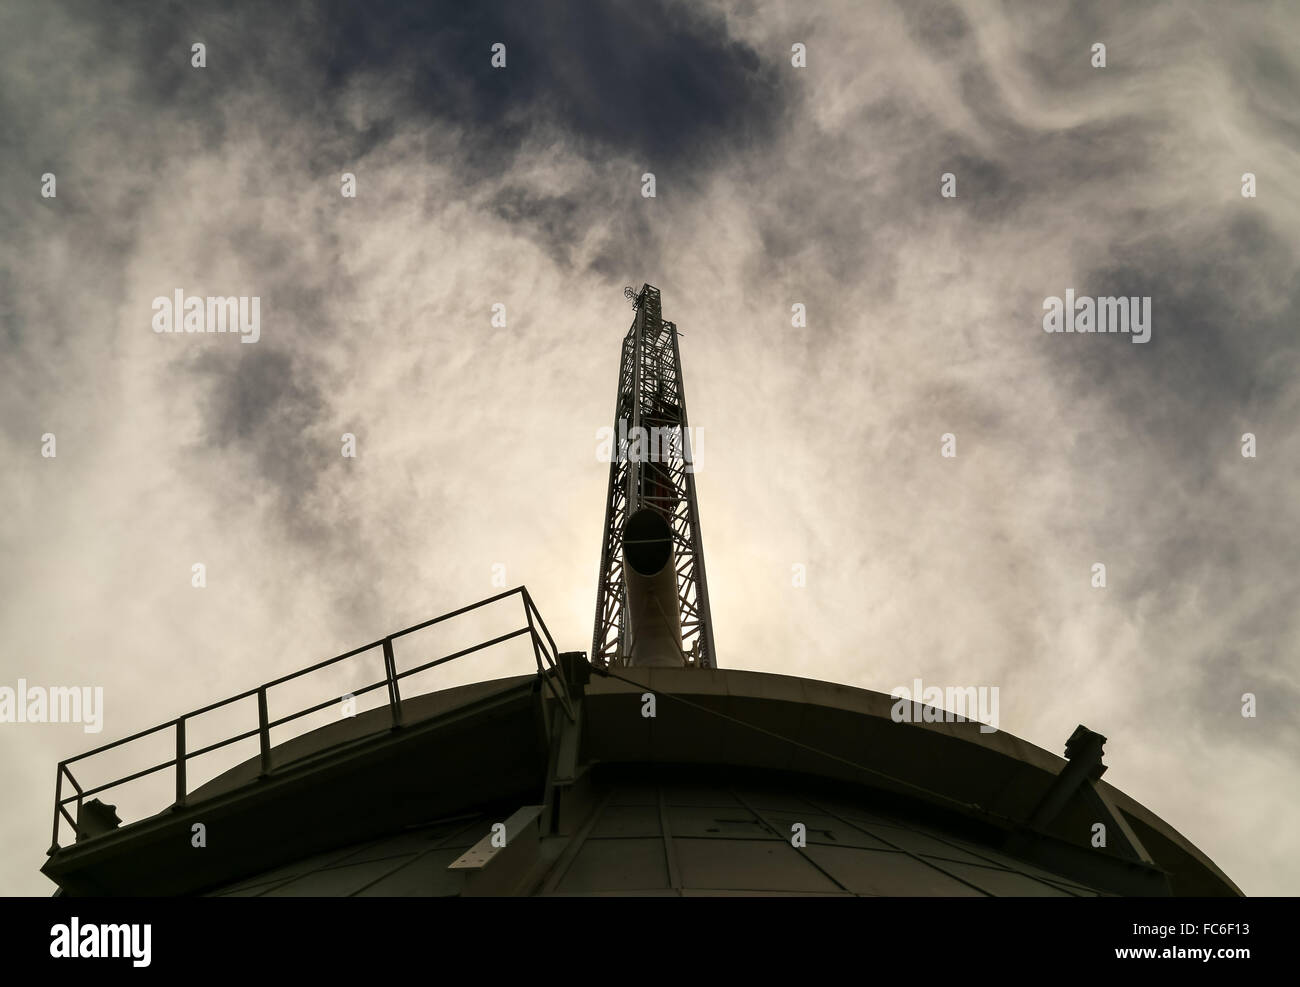 Stratosphere Tower - Stock Image